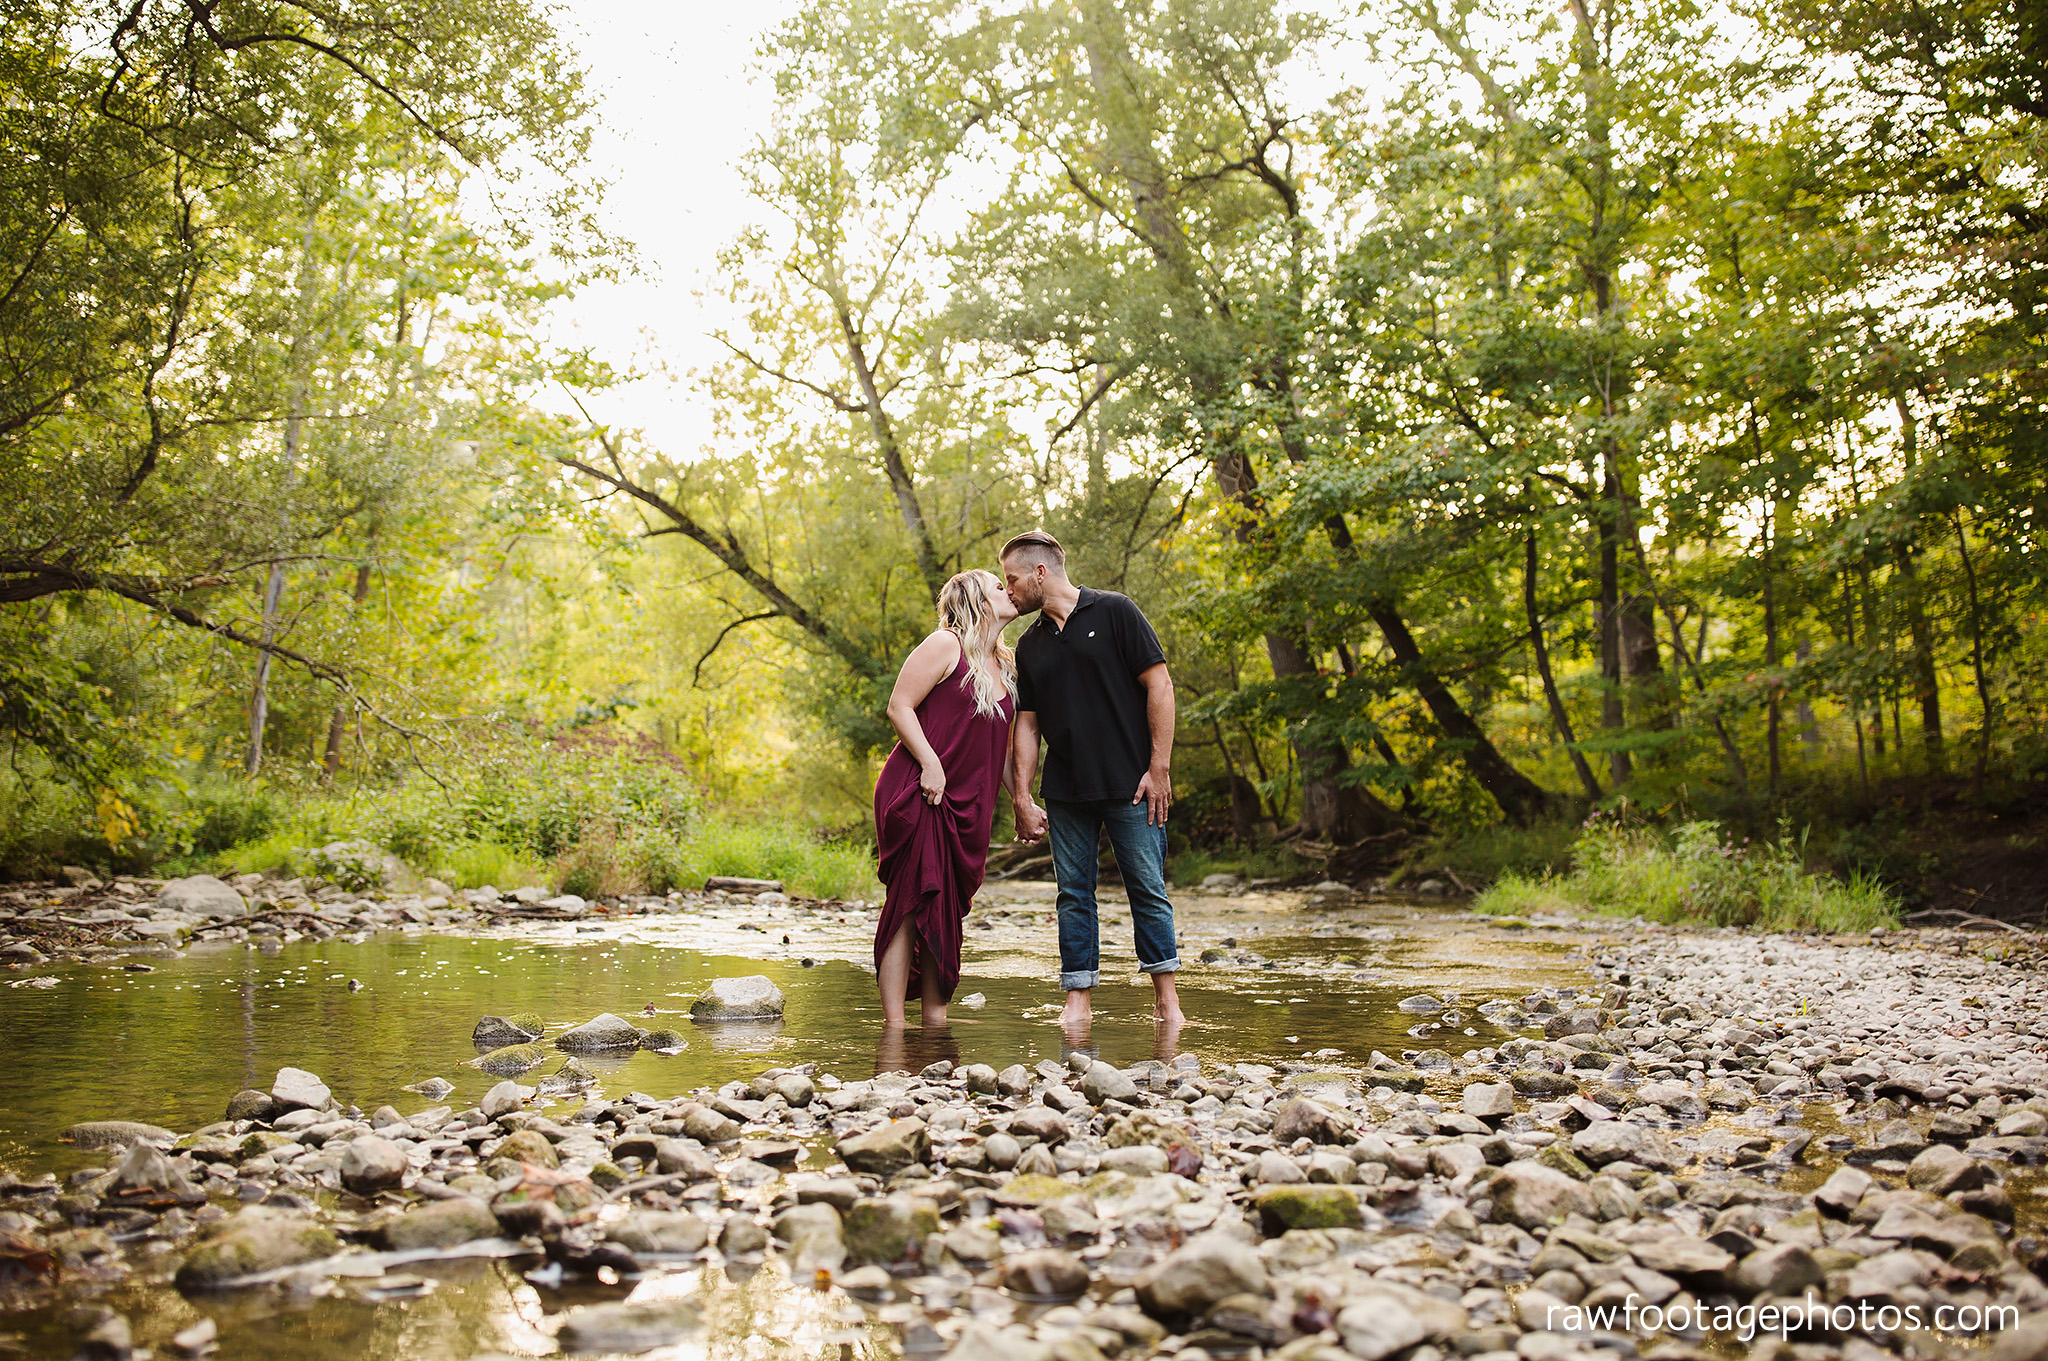 london_ontario_wedding_photographer-woodsy_engagement_session-e_session-engagement_photos-medway_creek-medway_heritage_forest-raw_forest_photography027.jpg